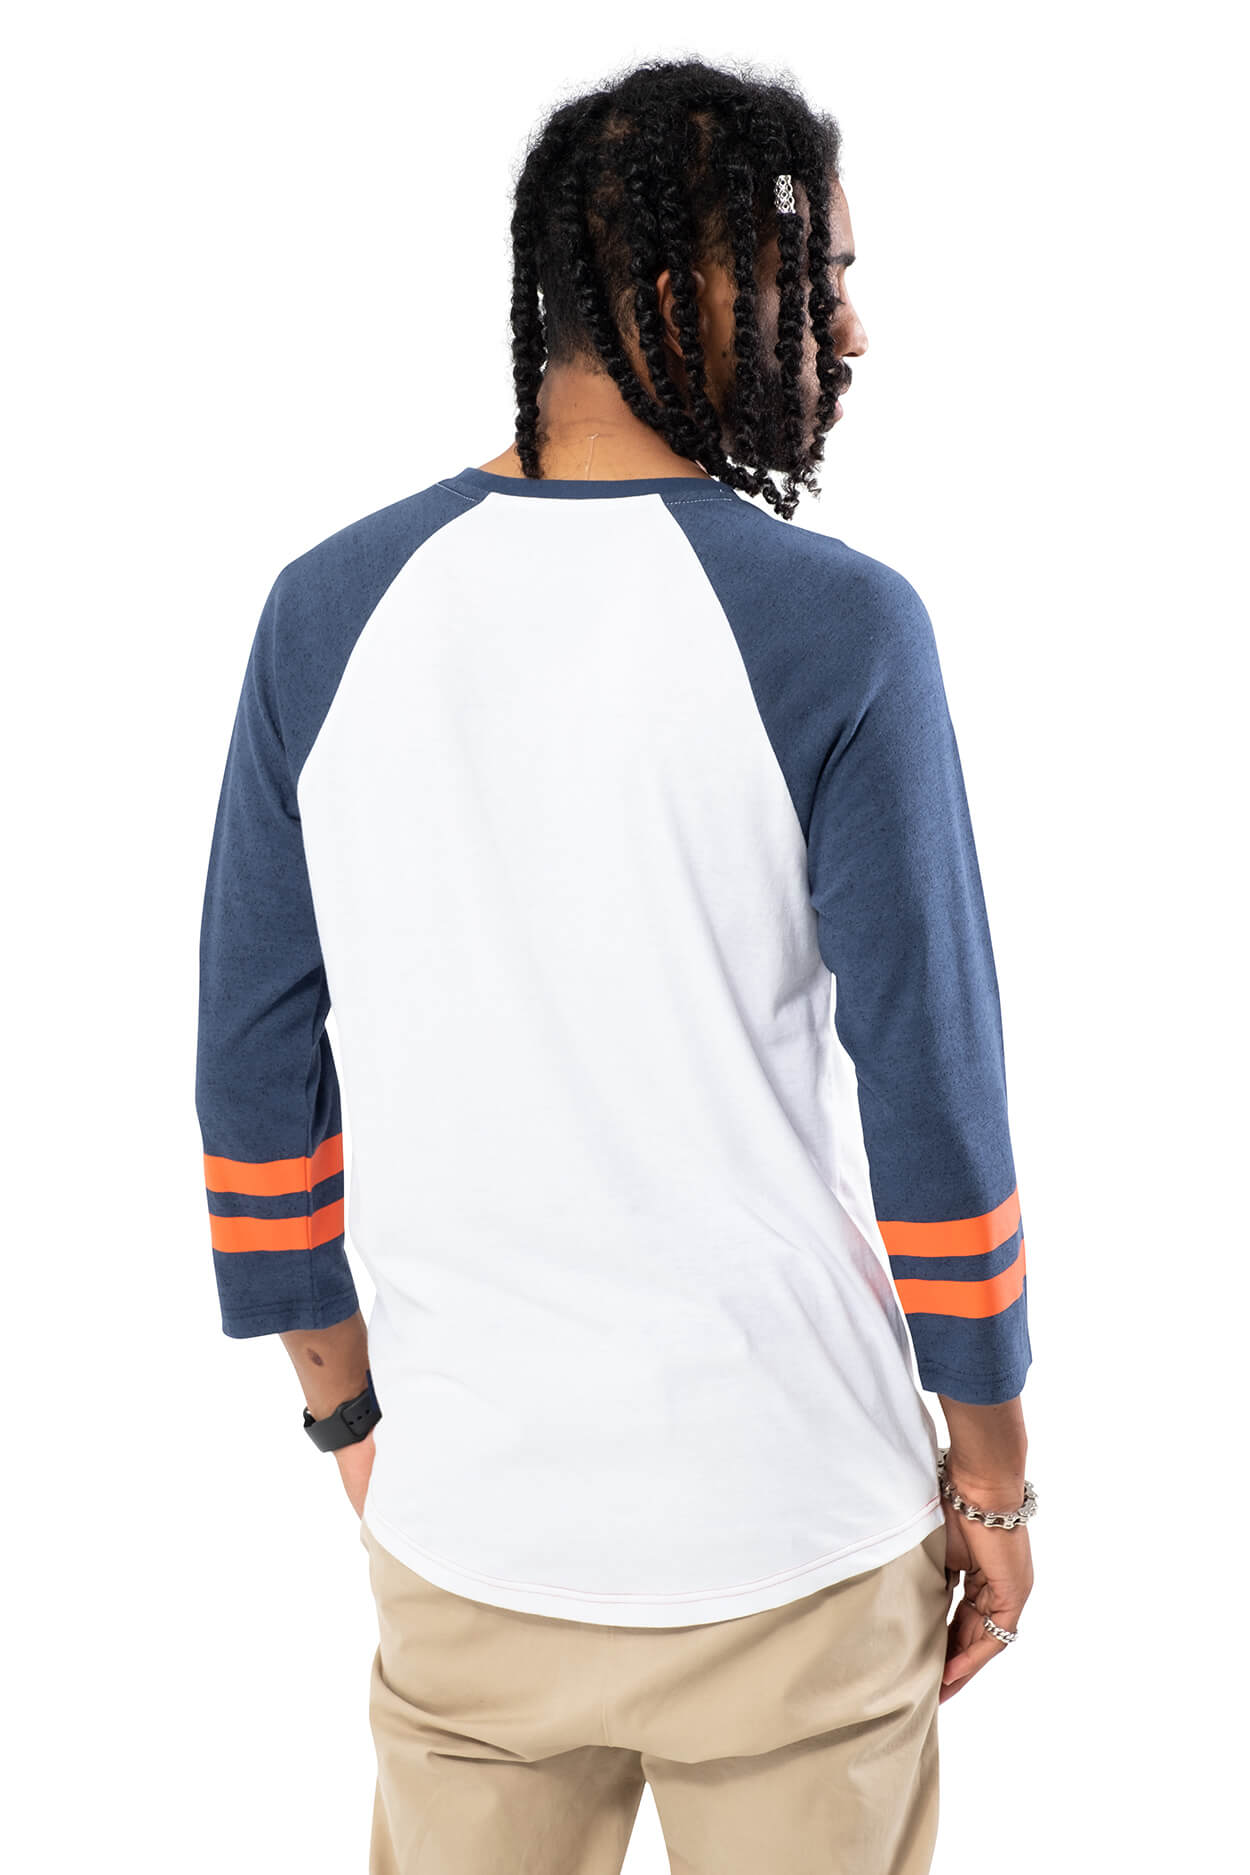 NFL Denver Broncos Men's Baseball Tee|Denver Broncos